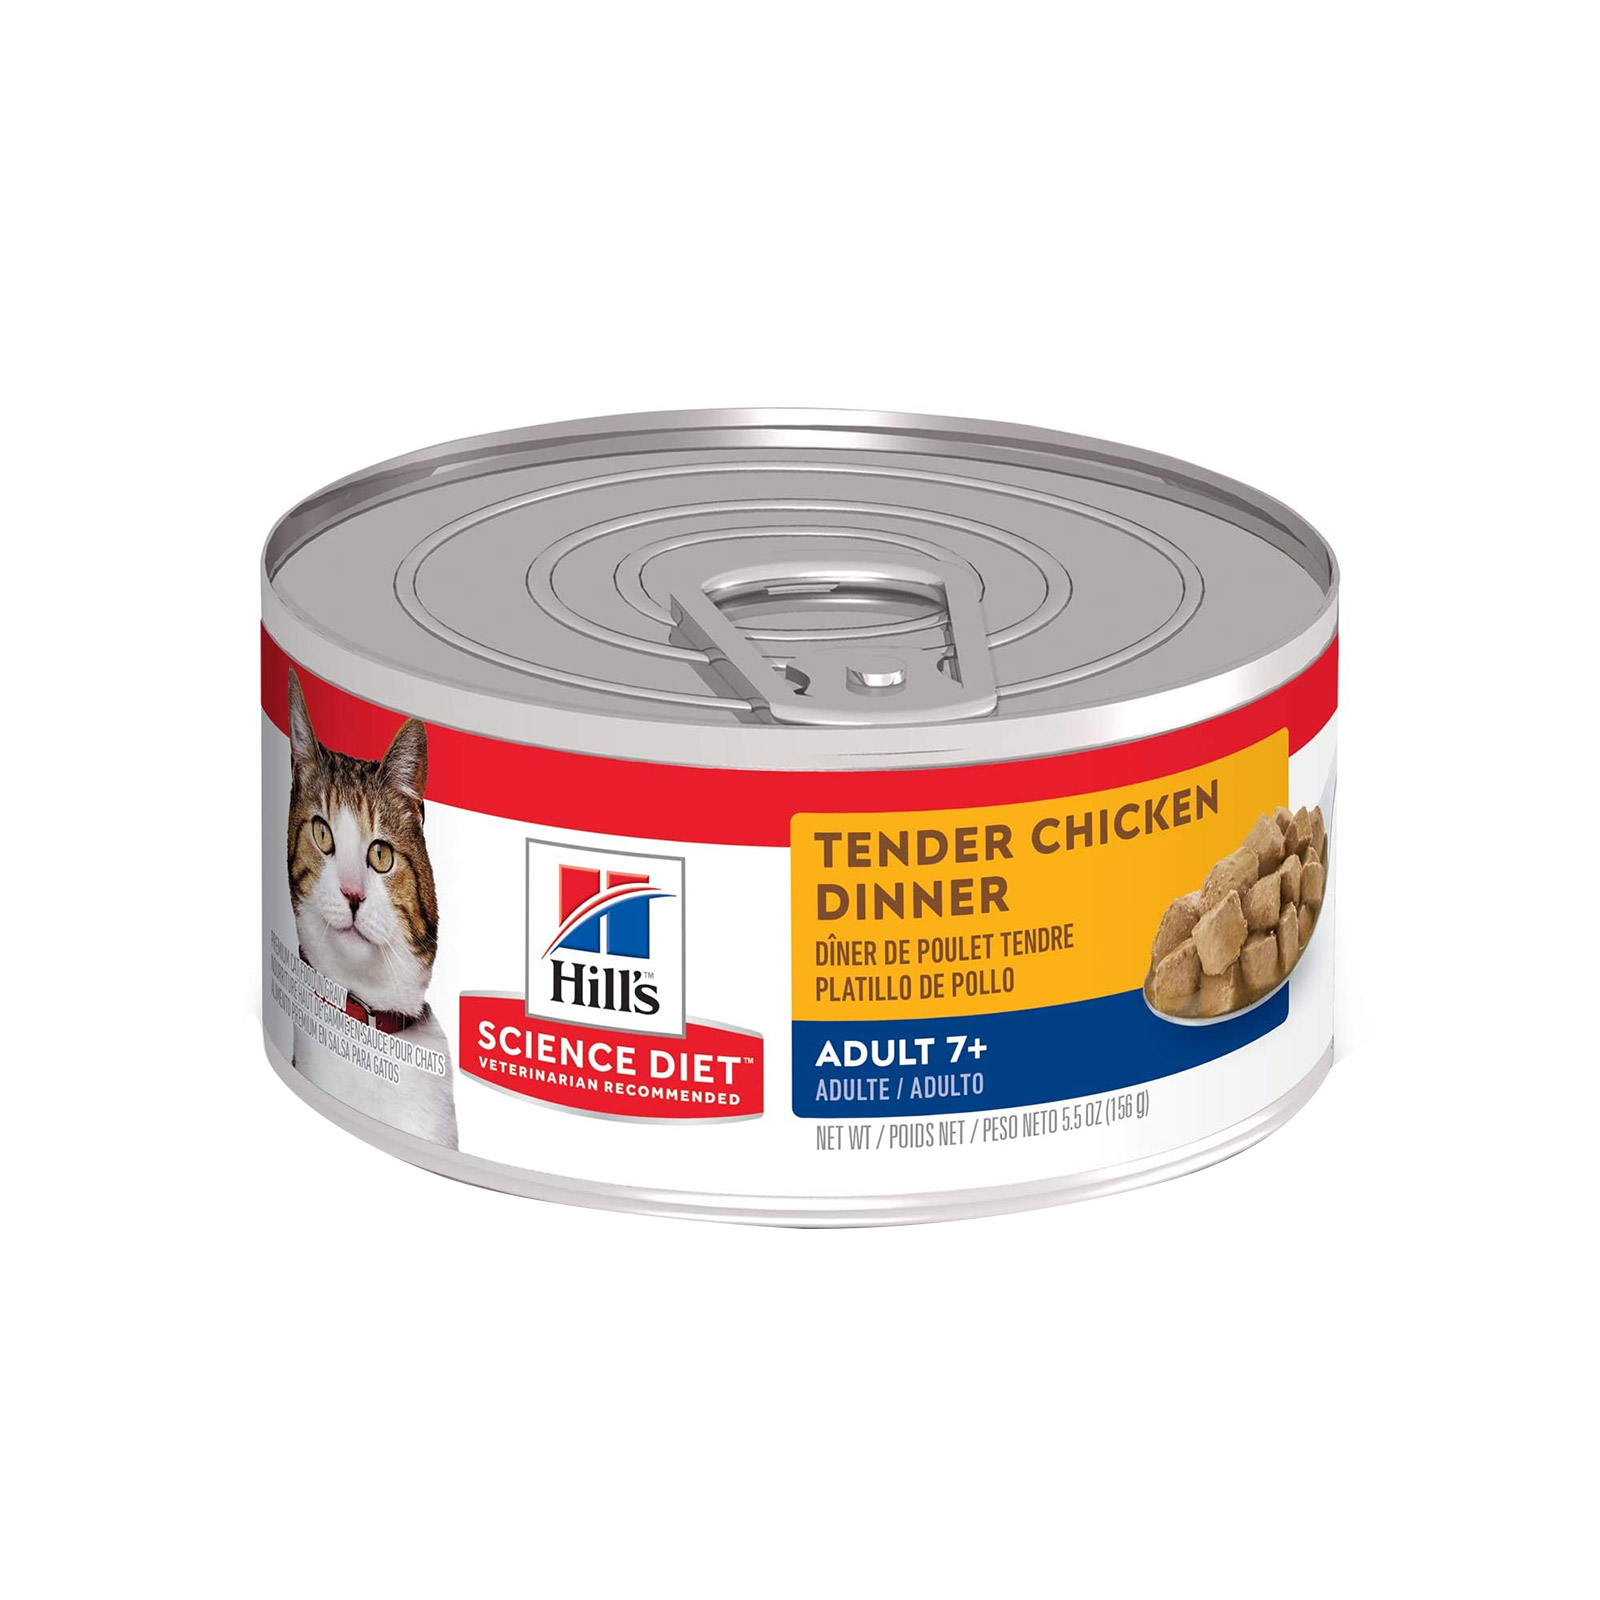 Hill's Science Diet Adult 7+ Tender Chicken Dinner Senior Canned Wet Cat Food  79 Gm